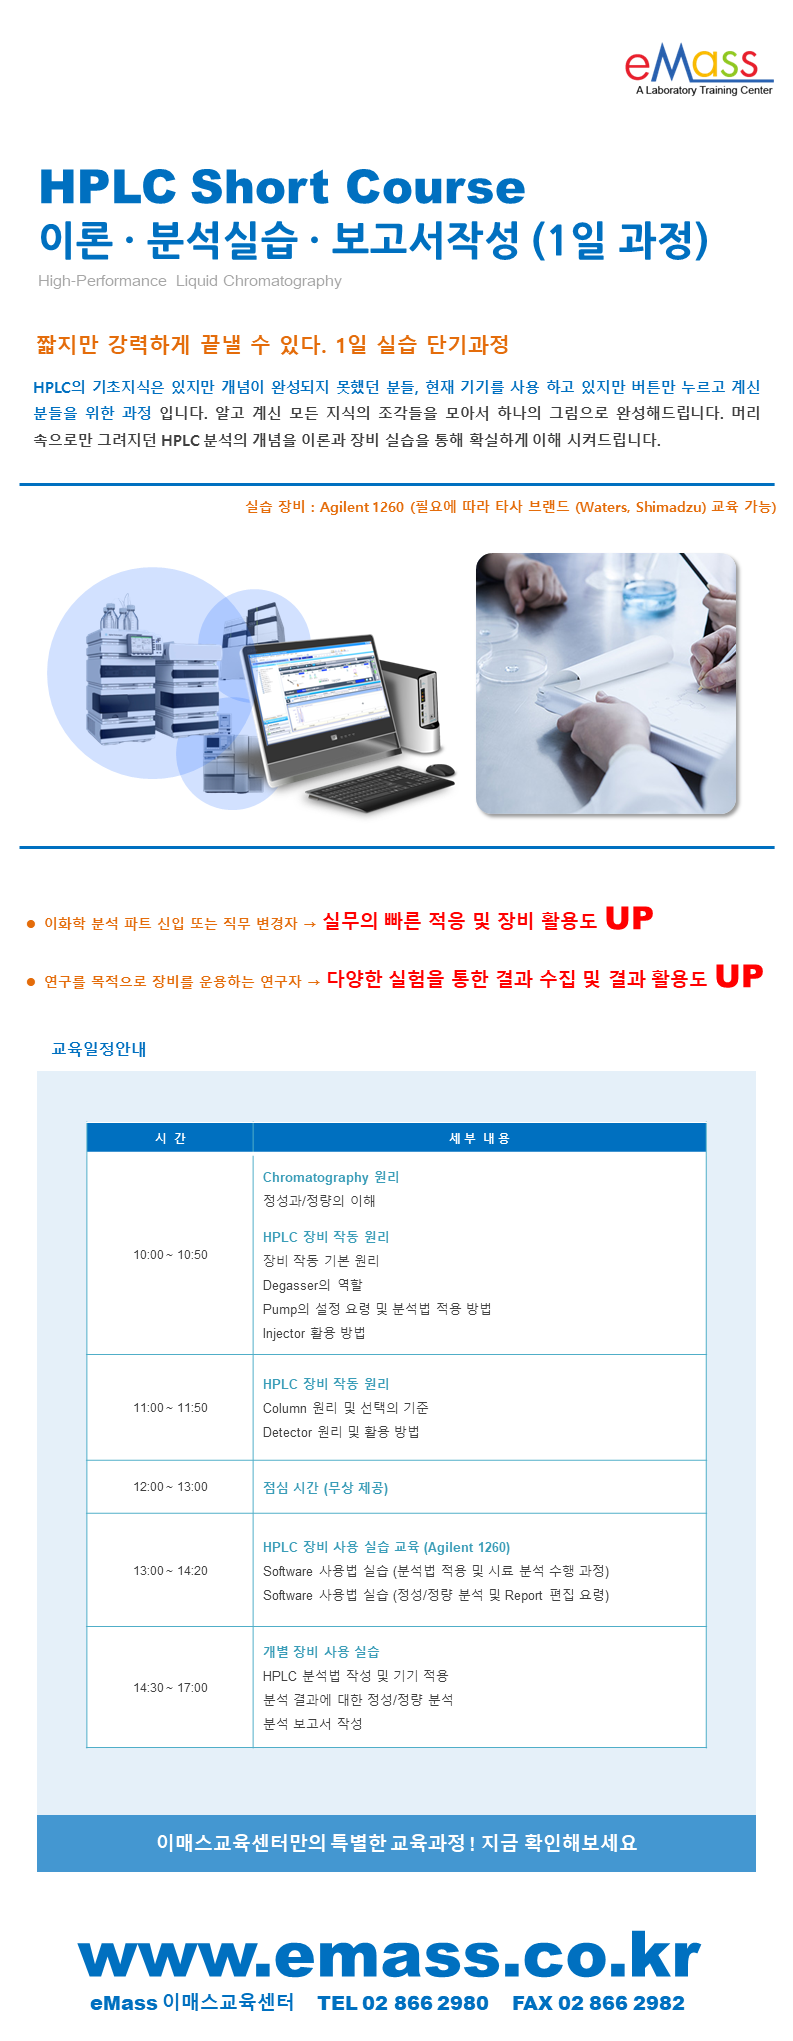 HPLC Short Course_1일 과정.png